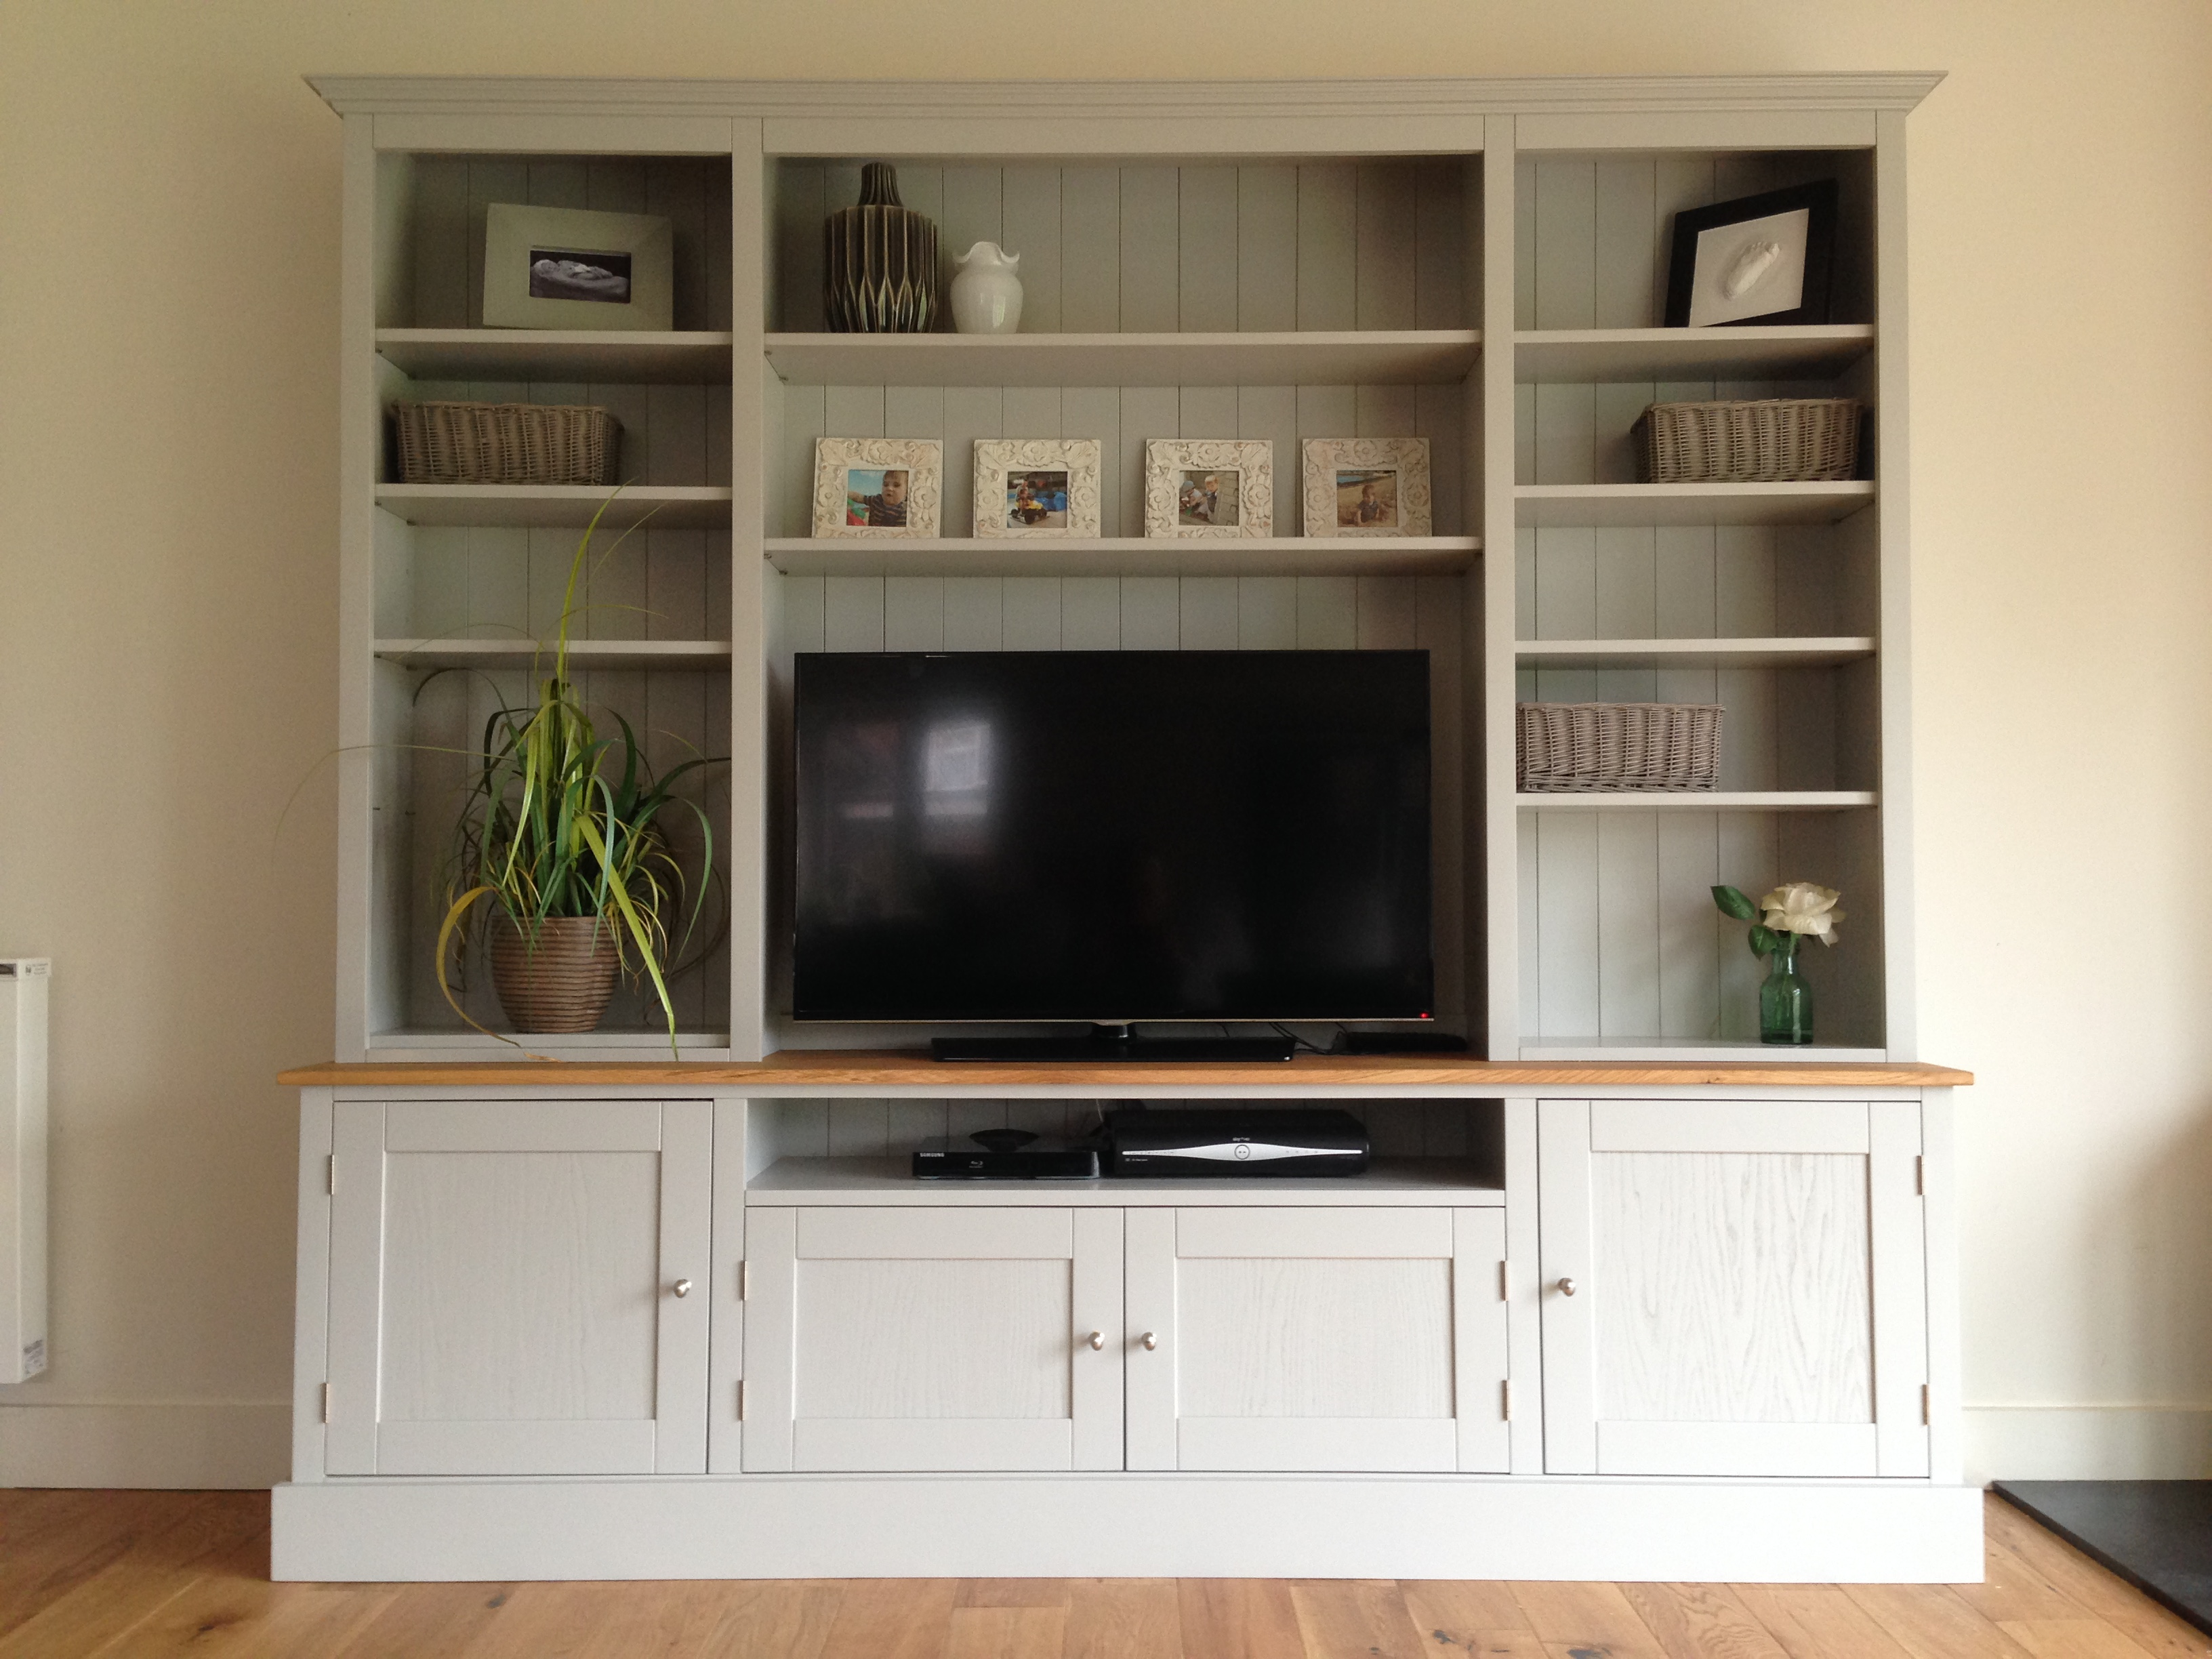 Georgeous 7ft Painted Tv Unit Dresser Nest At Number 20